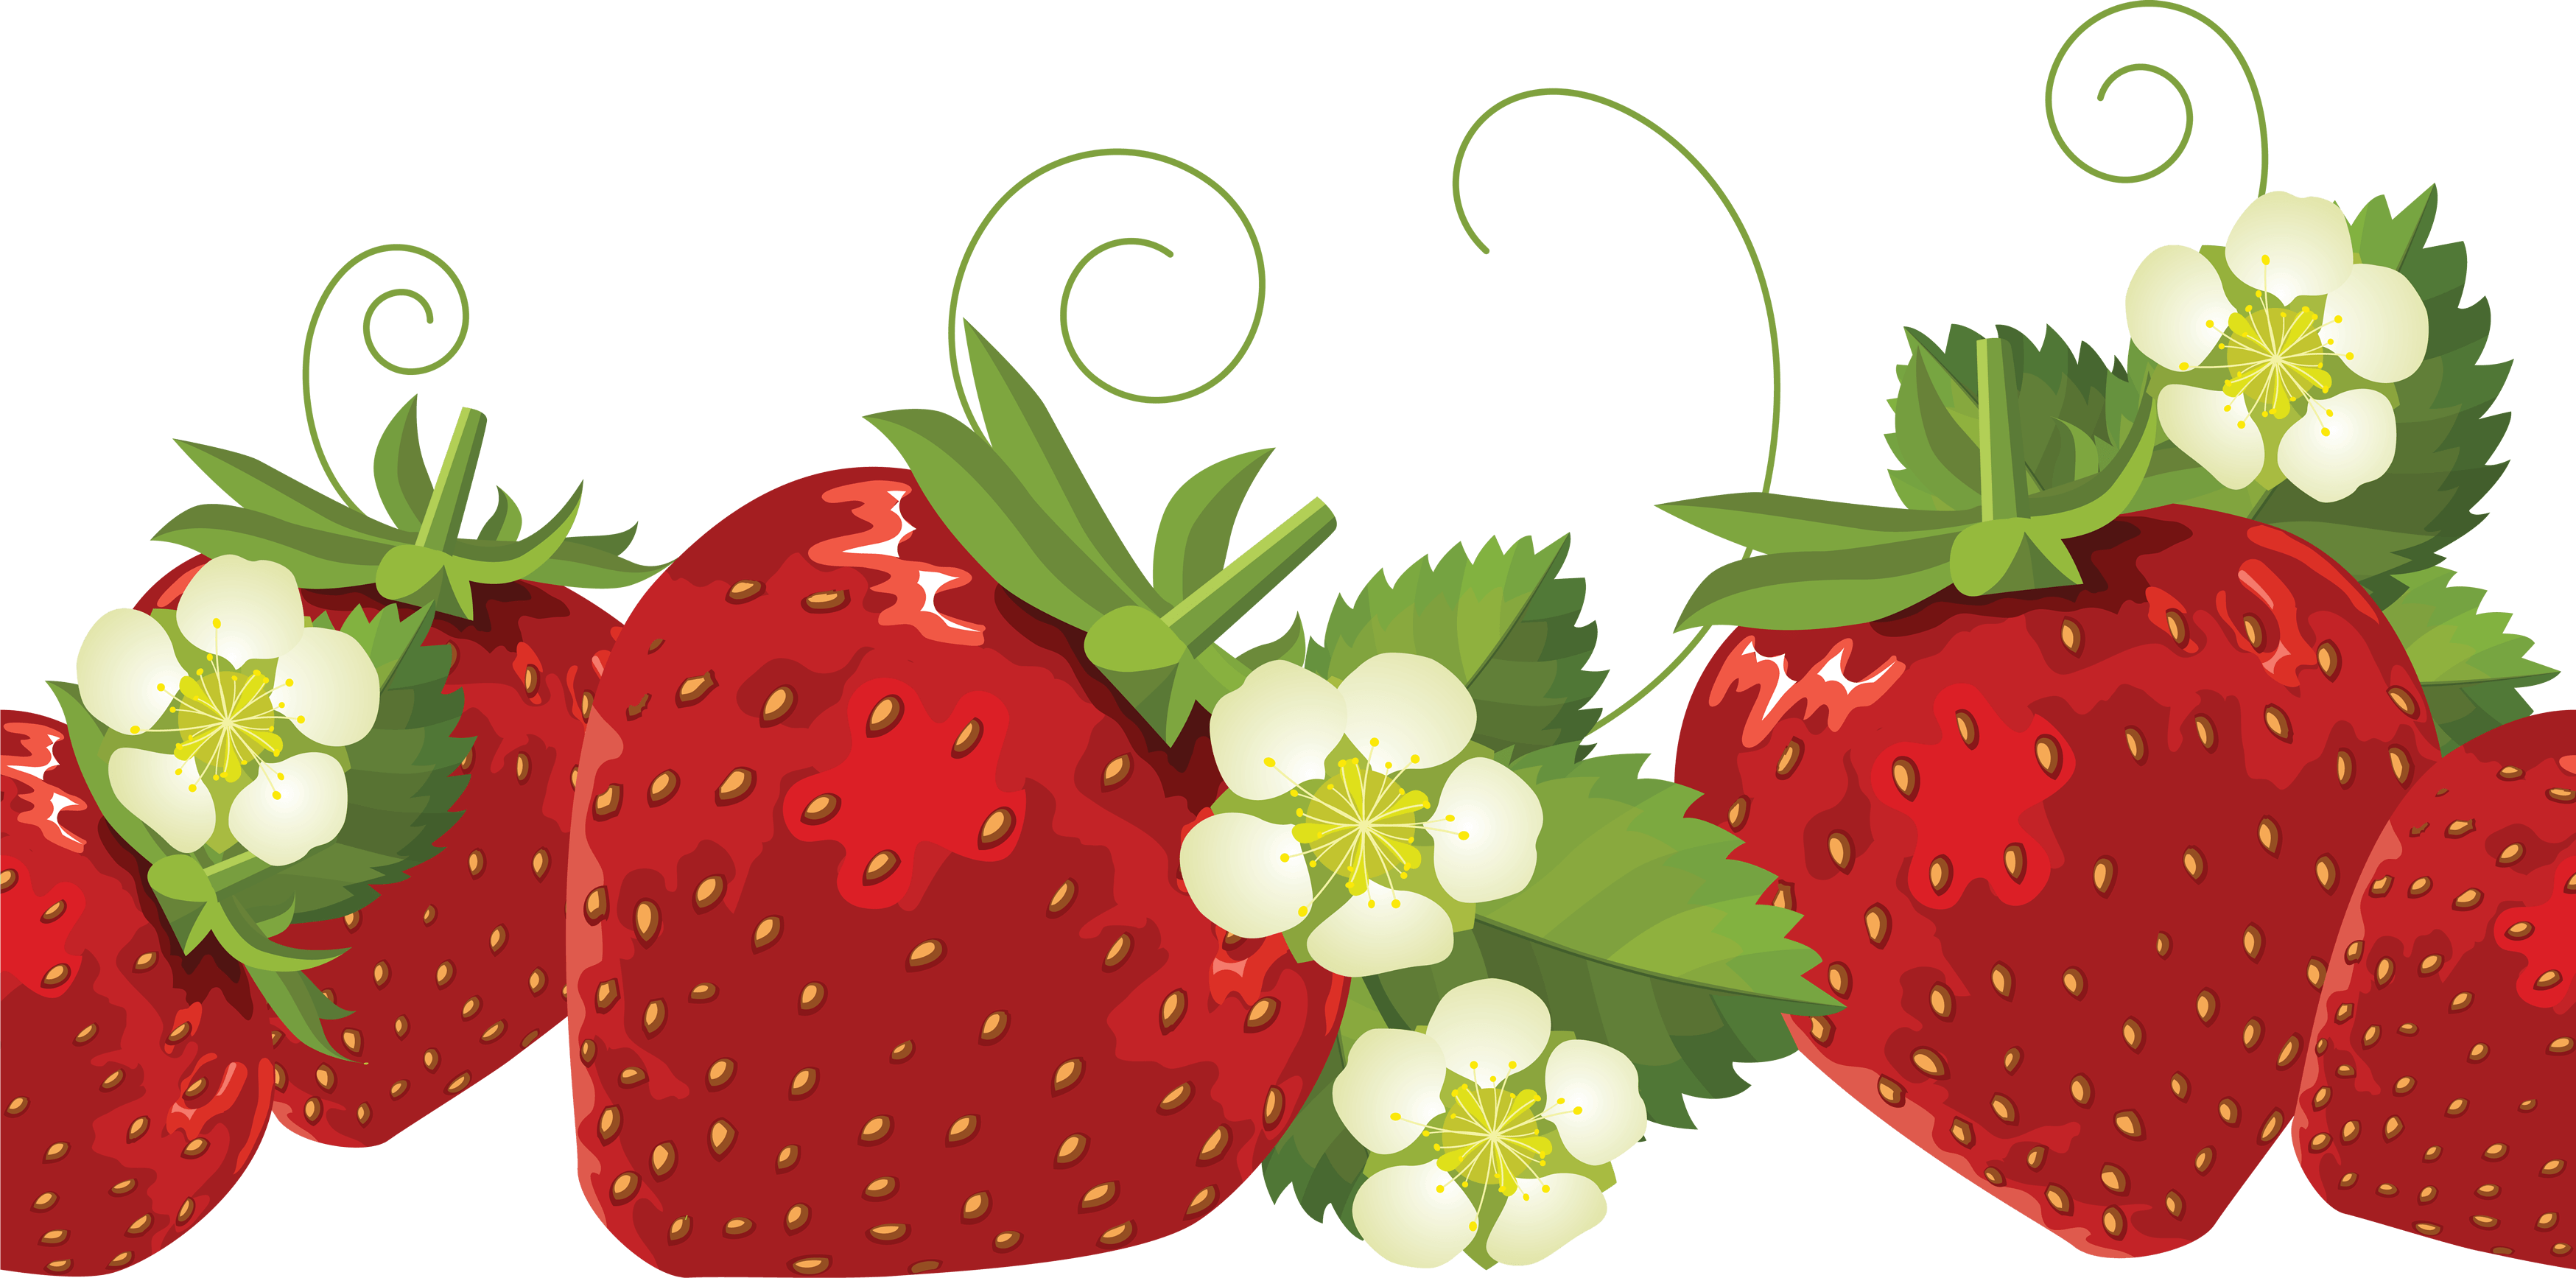 Free leaf cliparts download. Strawberries clipart strawberry leave